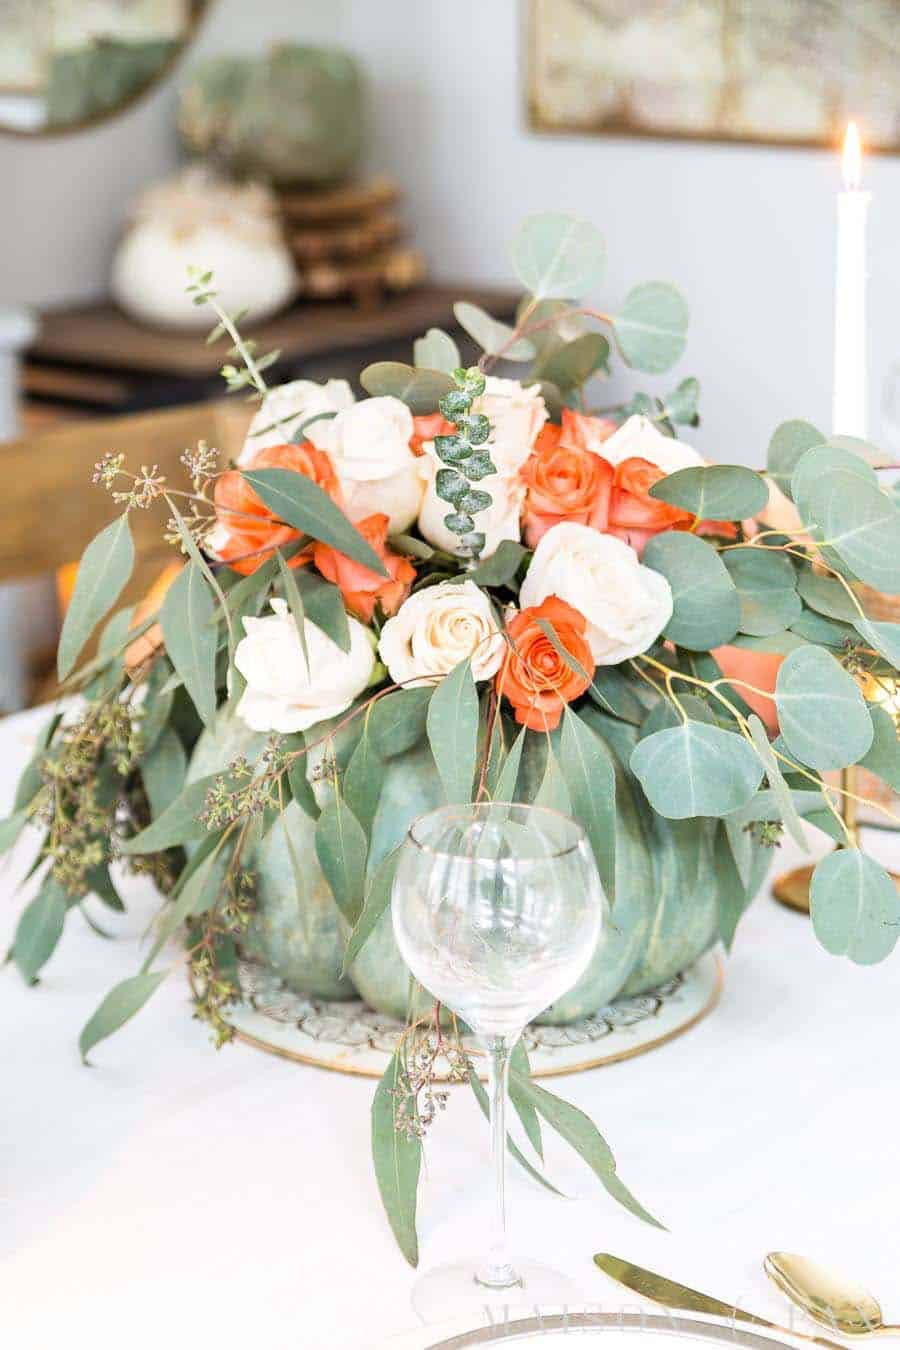 Amazing-Fall-Table-Decor-Ideas-For-Entertaining-27-1-Kindesign